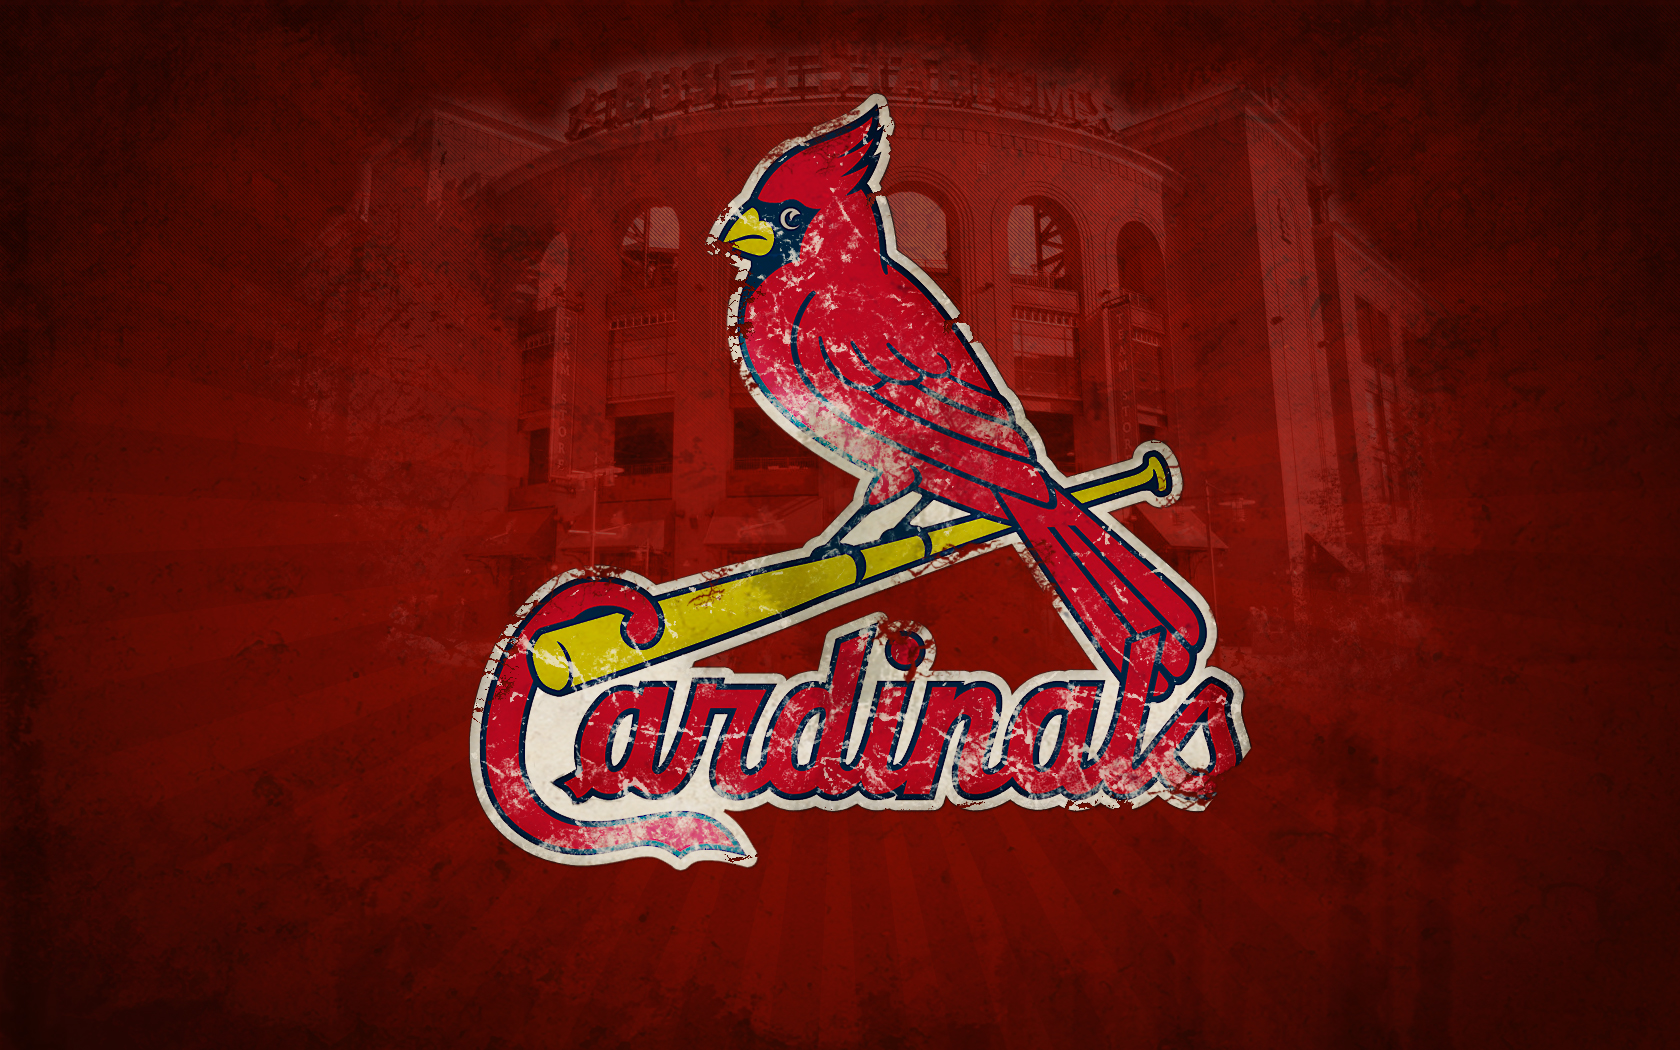 Arizona cardinals hd wallpaper wallpapersafari - Arizona cardinals screensaver free ...